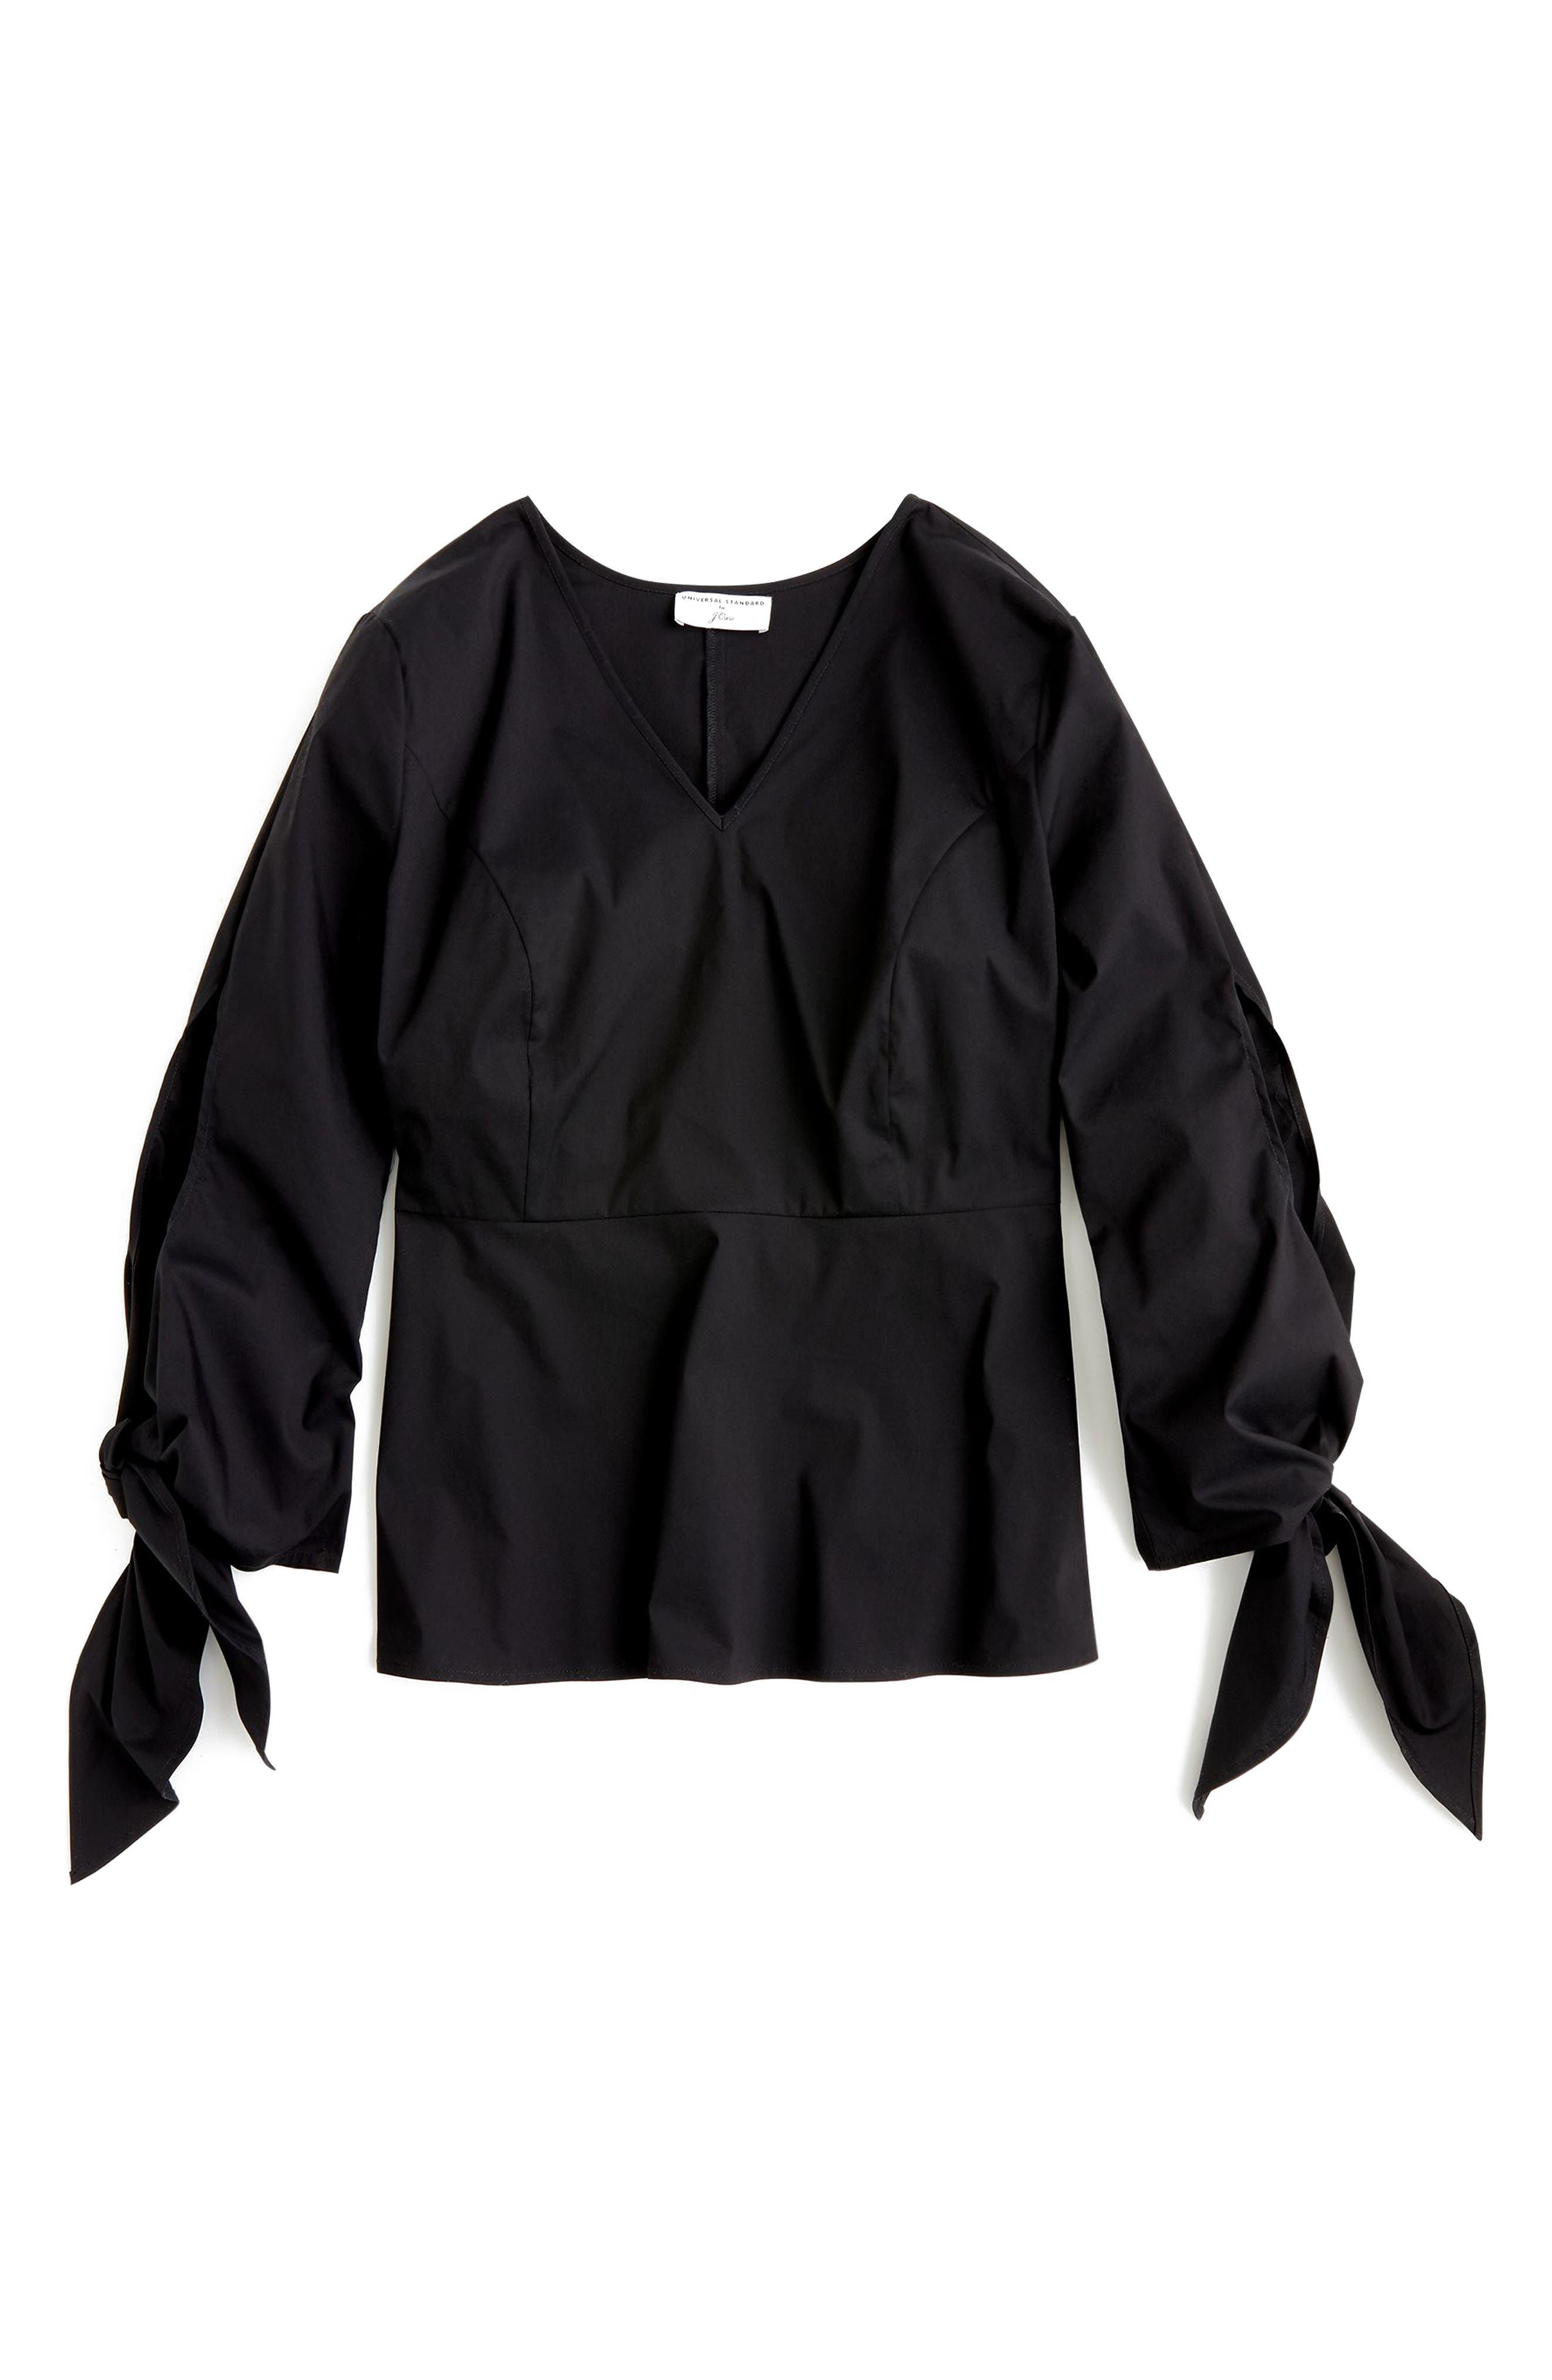 for J.Crew Stretch Poplin Tie Sleeve Top,                             Main thumbnail 1, color,                             BLACK